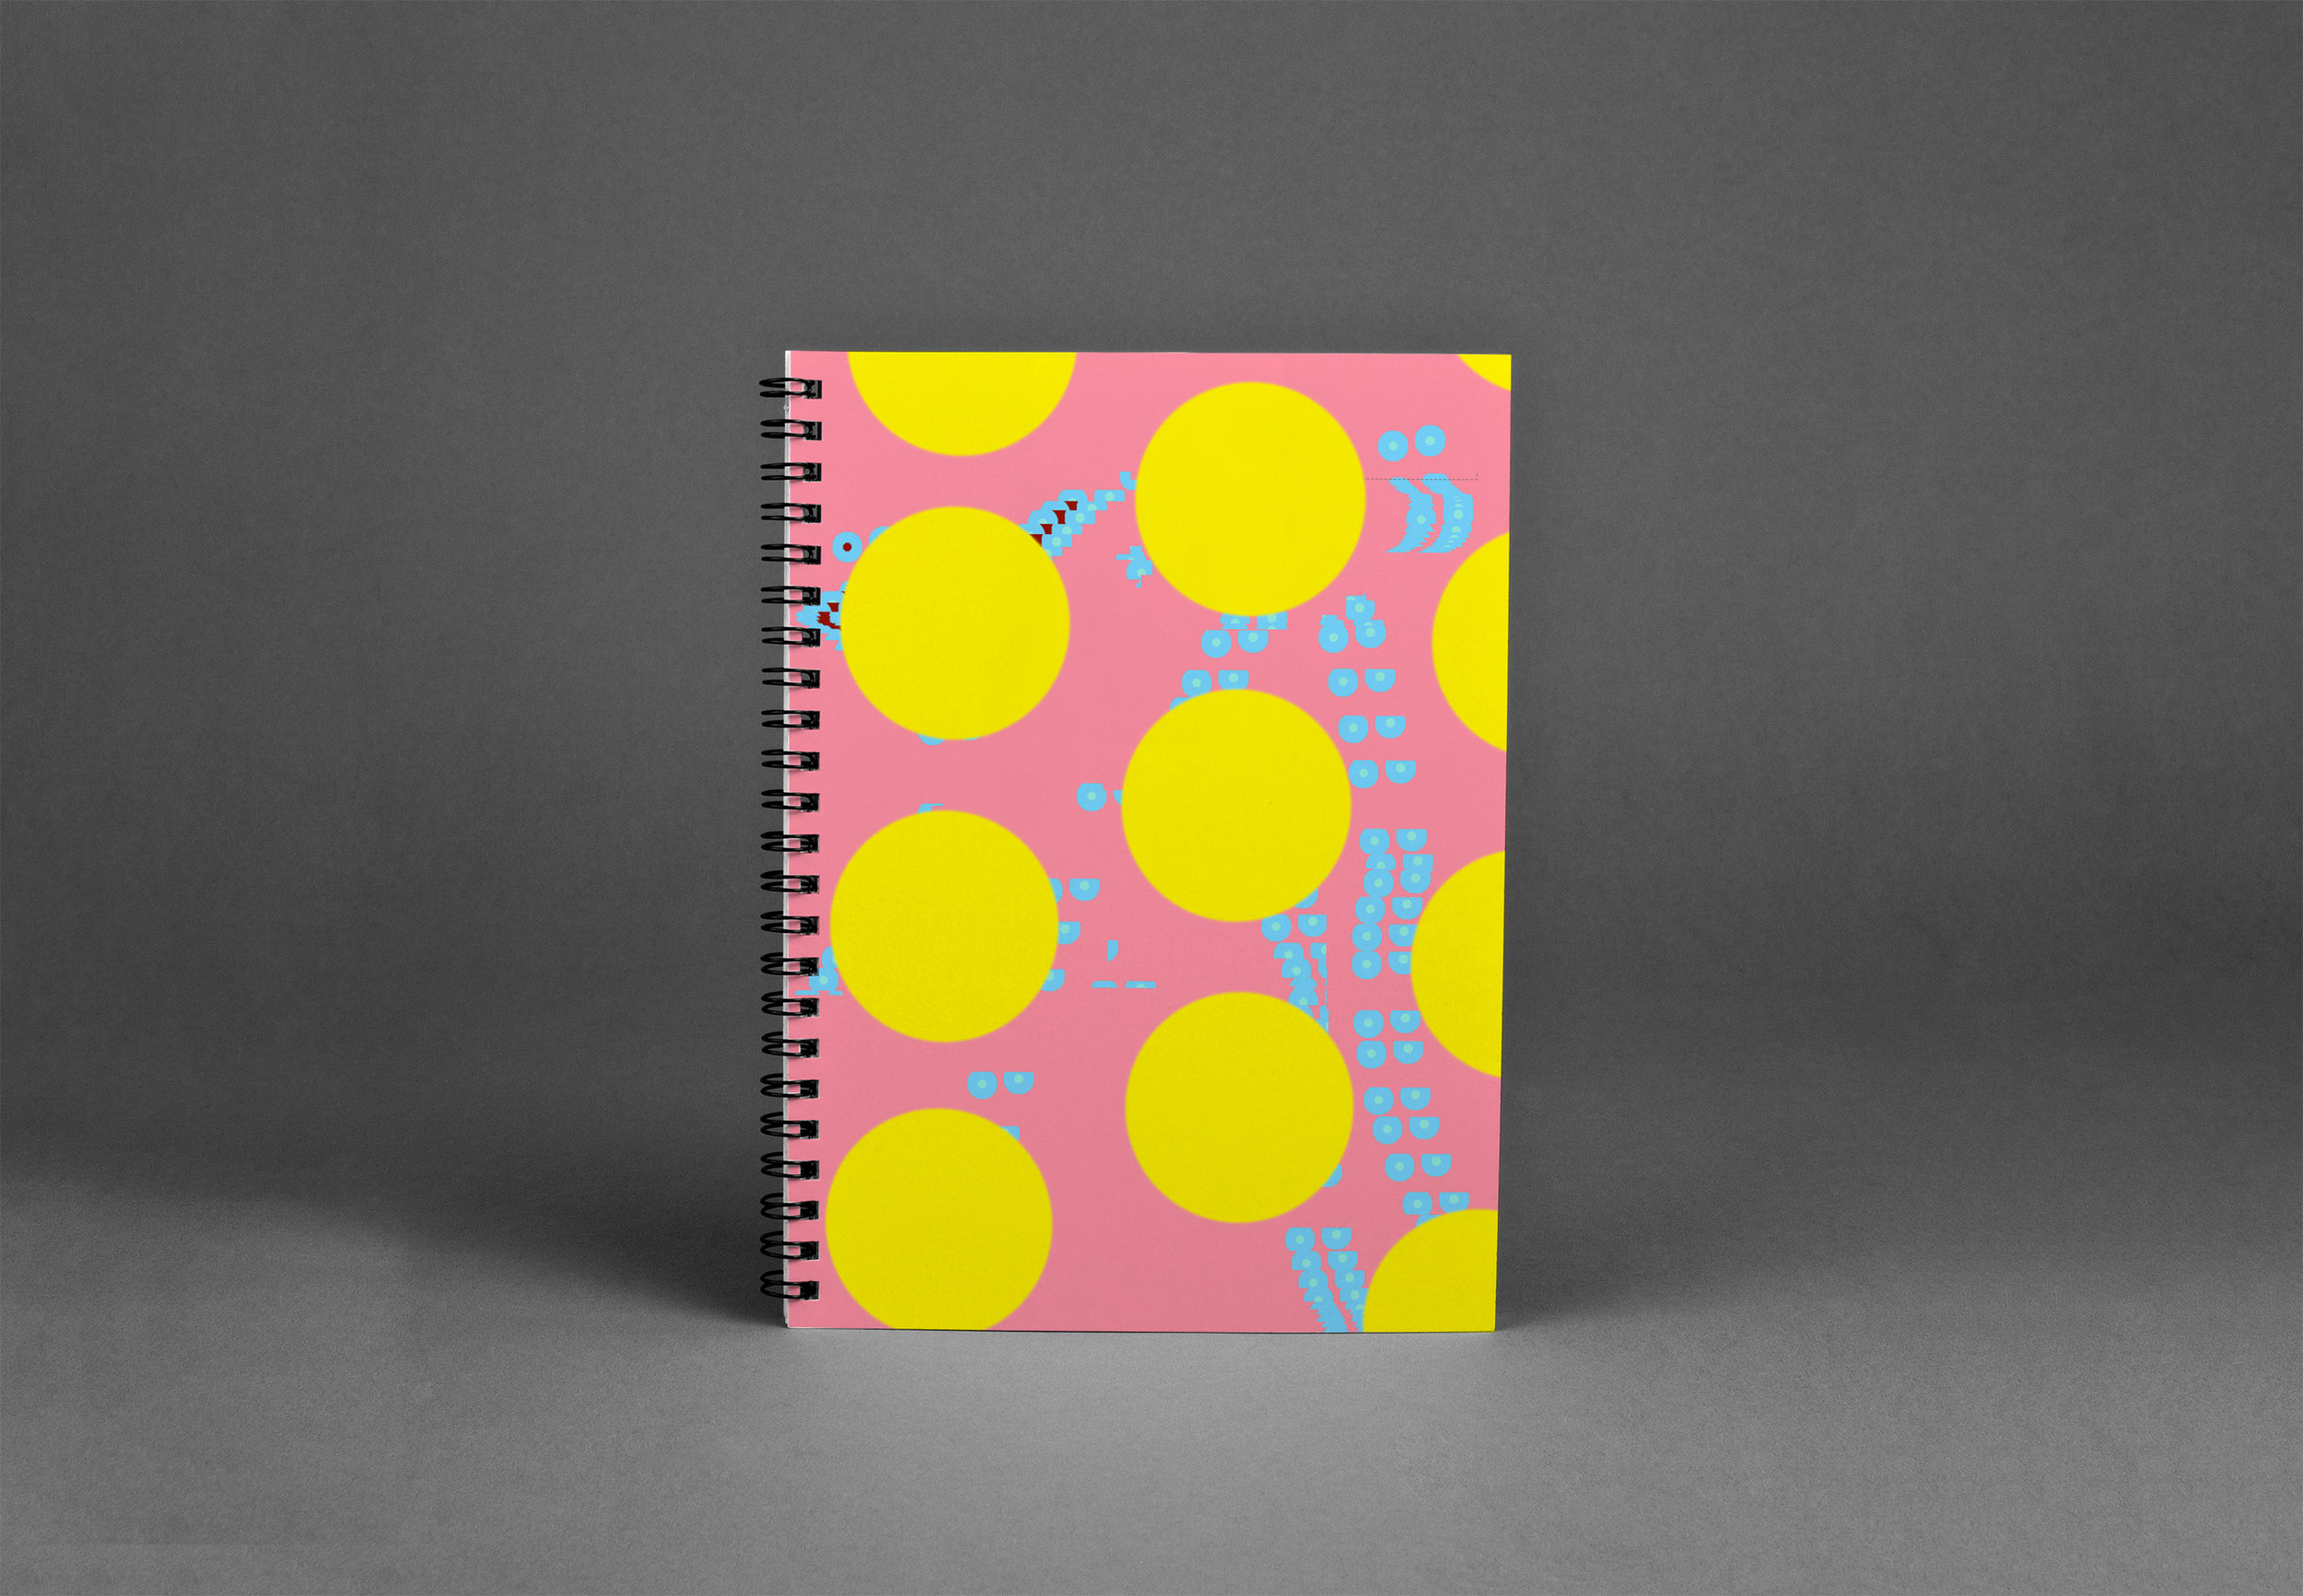 Notebook cover designs drawn exclusively in Microsoft Paint and Paintbrush (Mac's MS Paint). Future plans to expand into school supplies line.